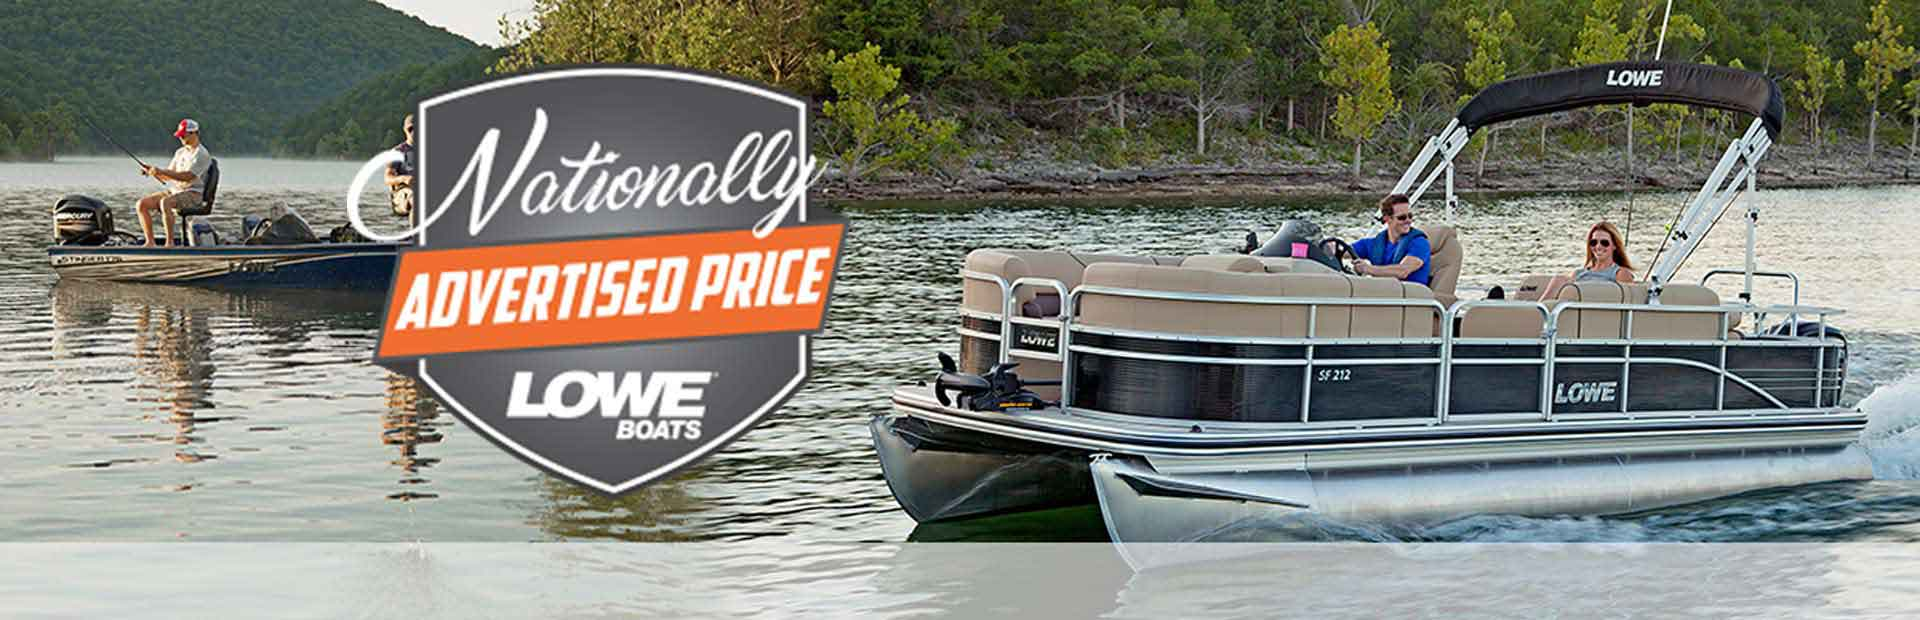 Lowe Boats & Pontoons Nationally Advertised Prices